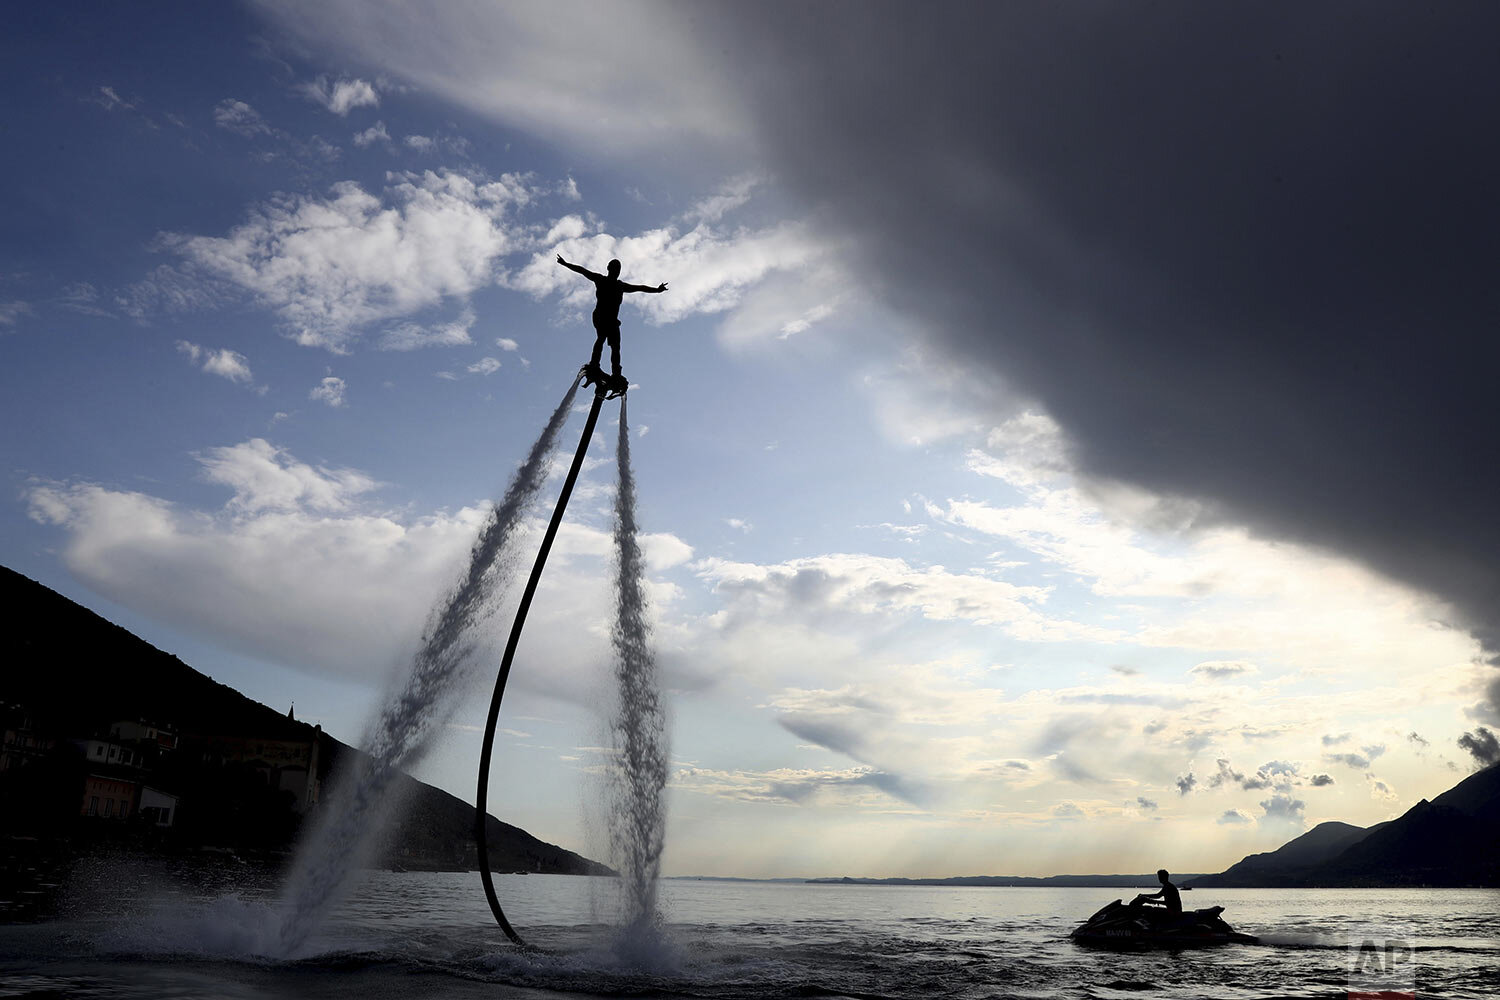 A man rides his flyboard at the Garda lake in Brenzone, northern Italy, Saturday, Sept. 7, 2019. (AP Photo/Matthias Schrader)